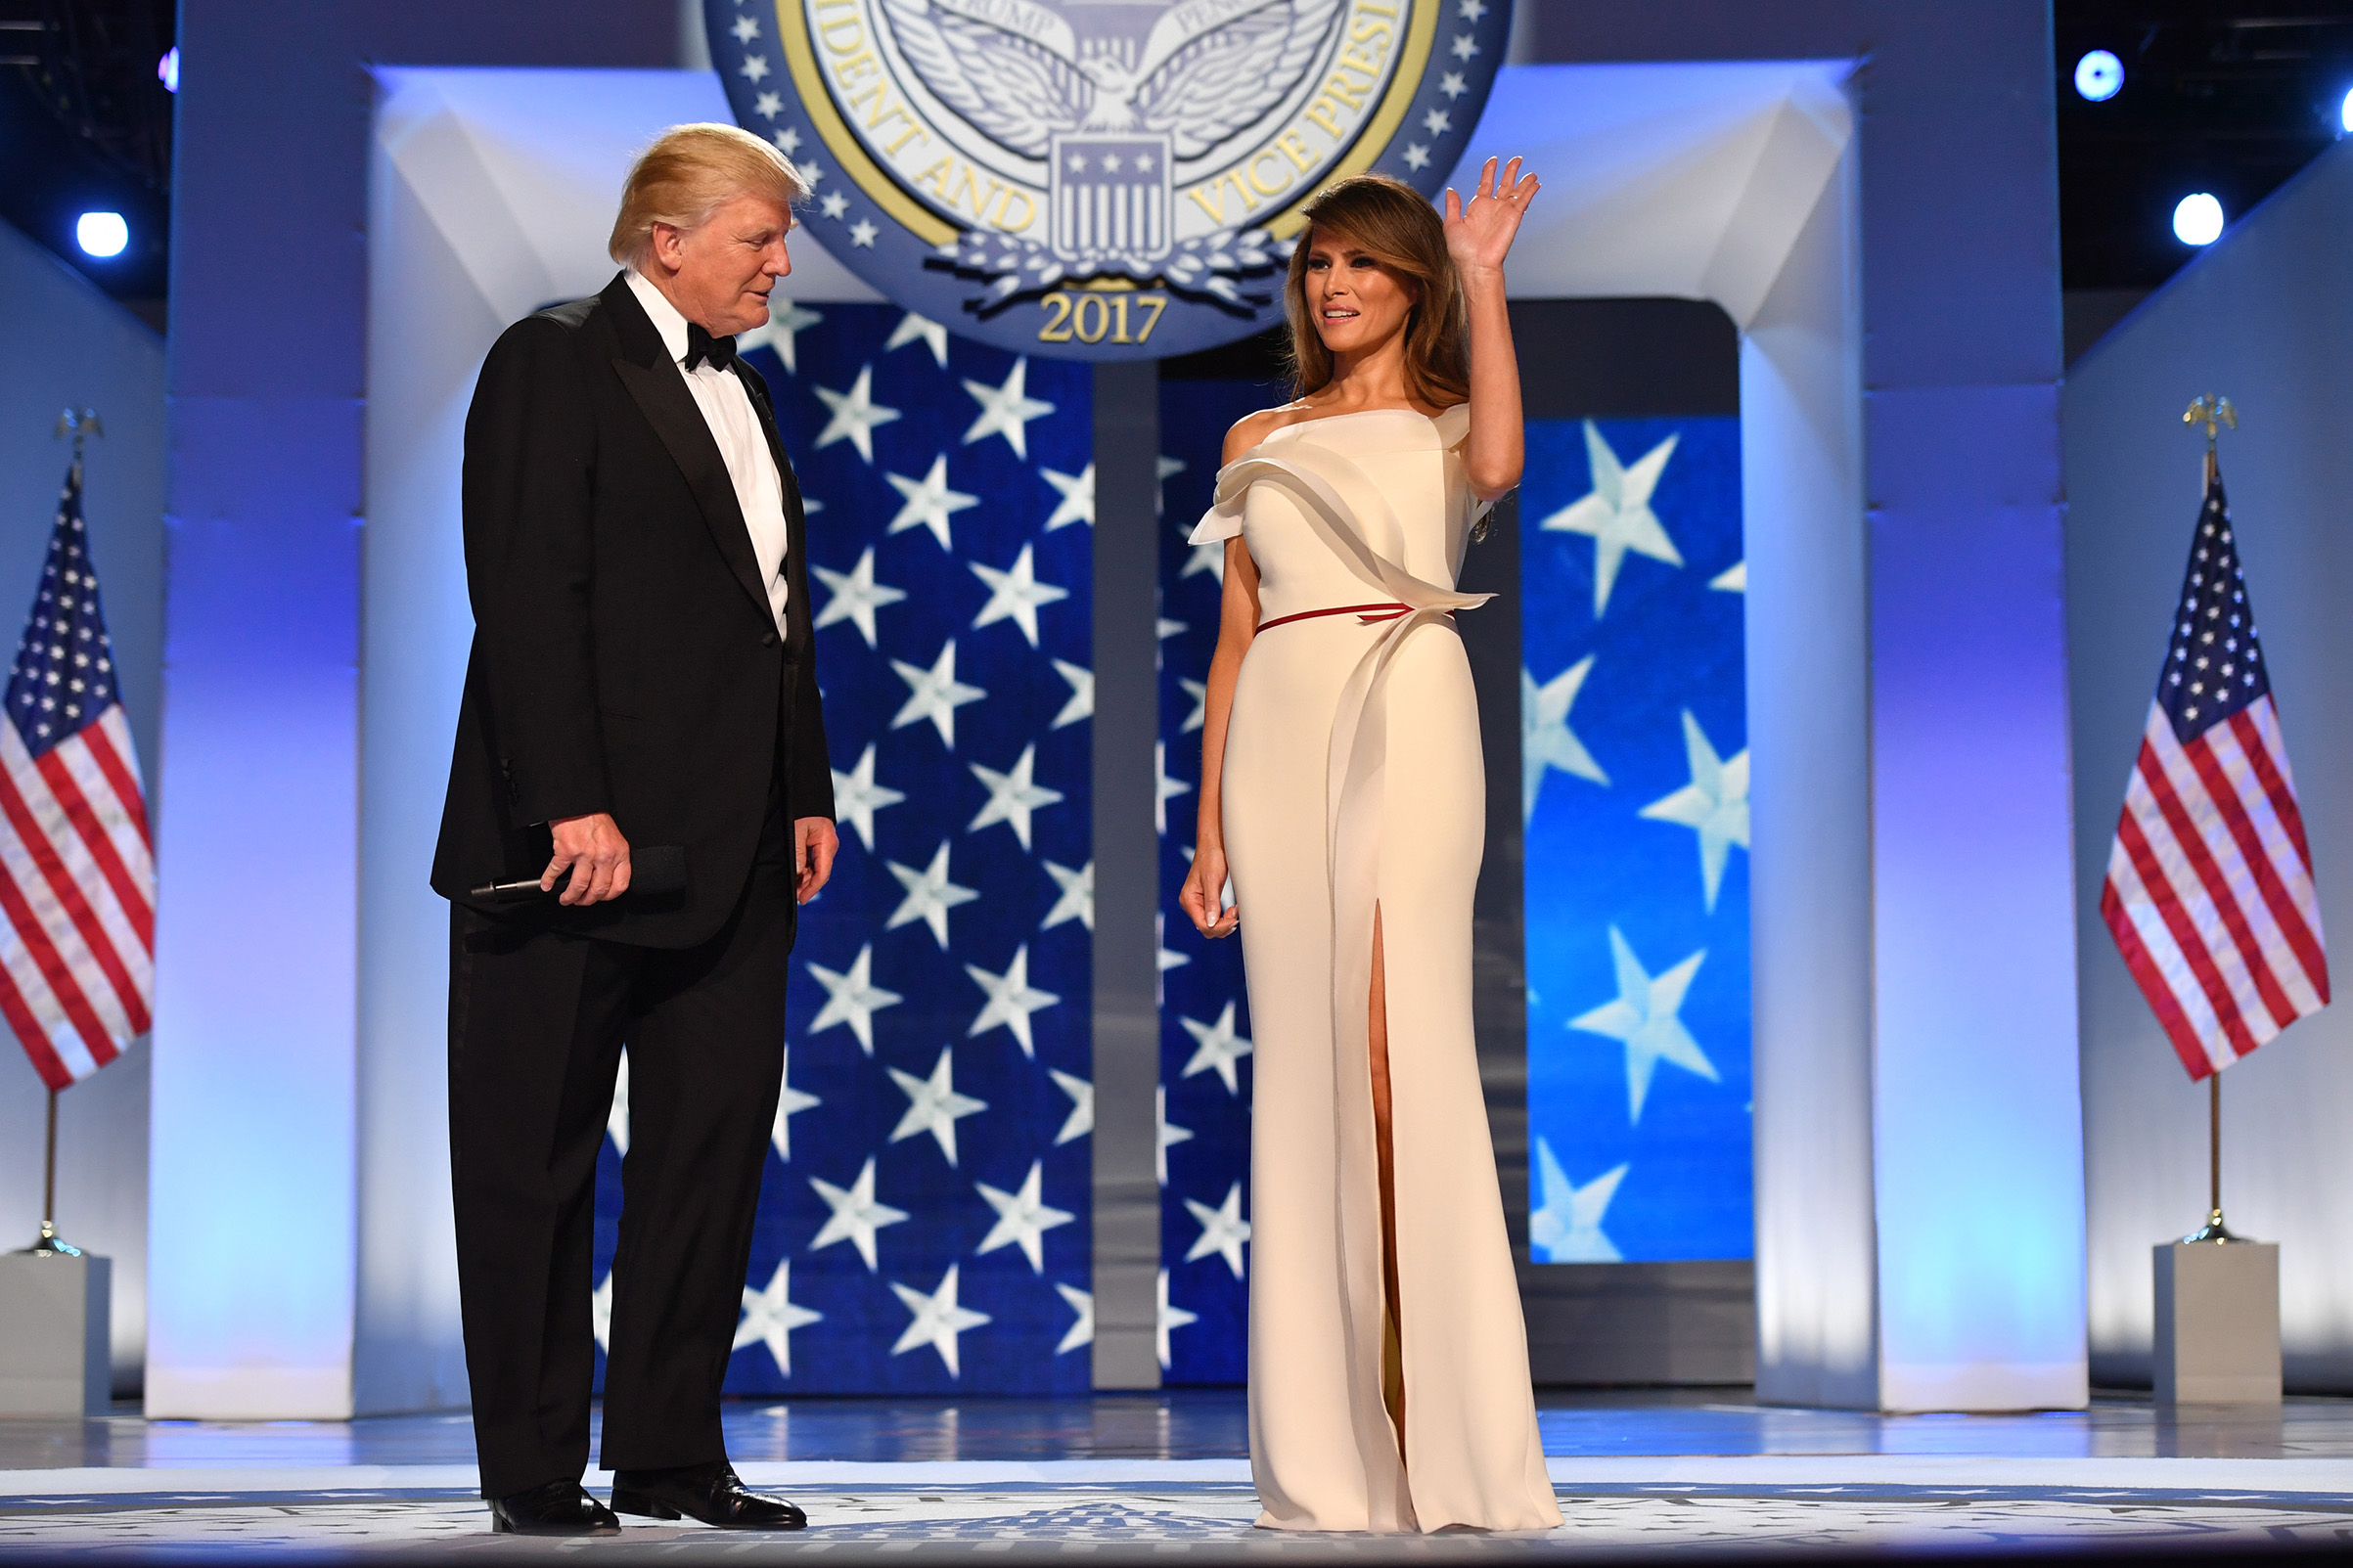 President Donald Trump with First lady Melania Trump, wearing a white, off-the-shoulder gown by Hervé Pierre,  arrive at the Freedom Ball on Jan. 20, 2017 in Washington, D.C.